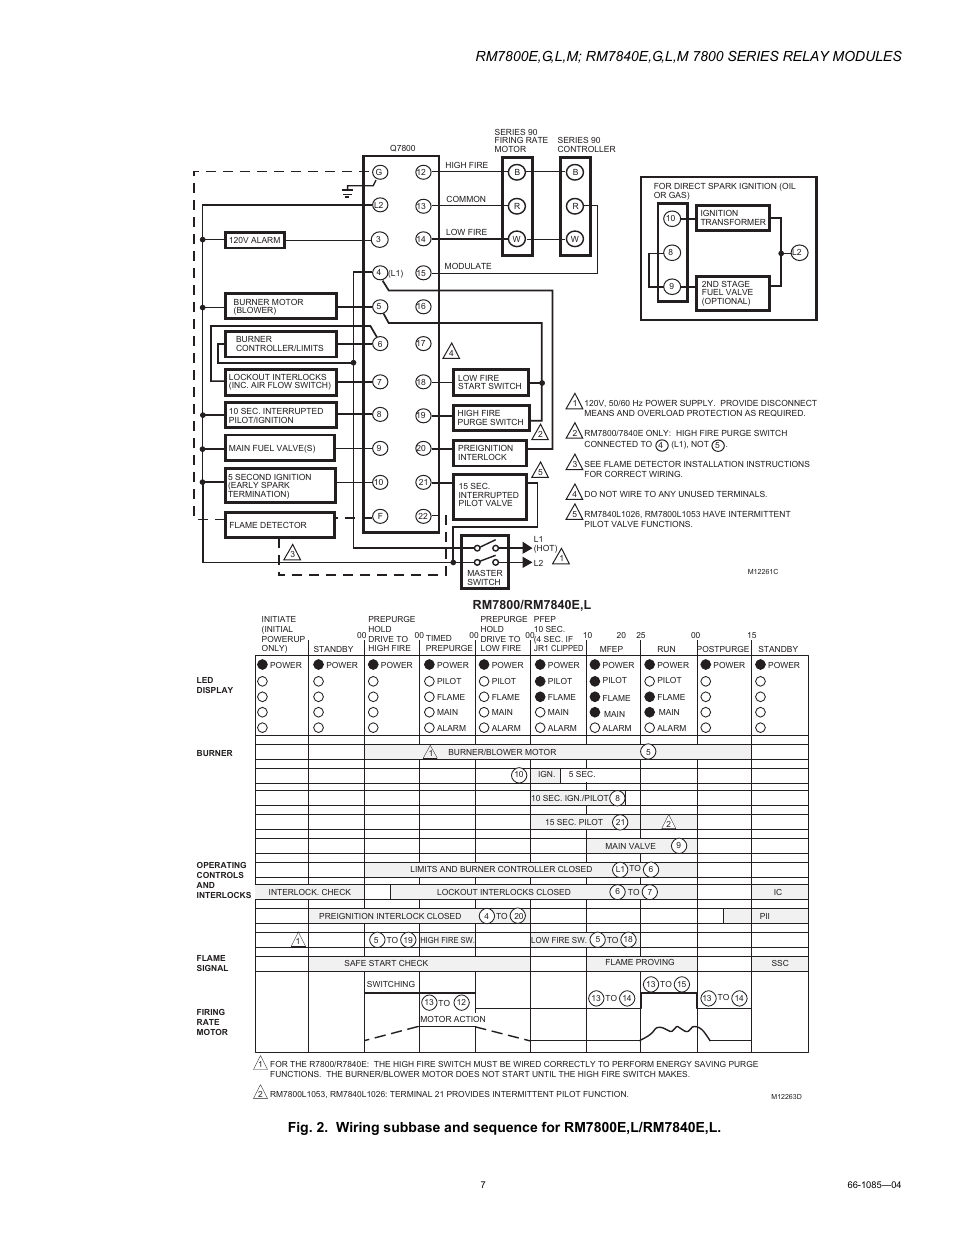 Honeywell Rm7800g User Manual Page 7 16 Also For Rm7800e 7800 Burner Control Wiring Diagram